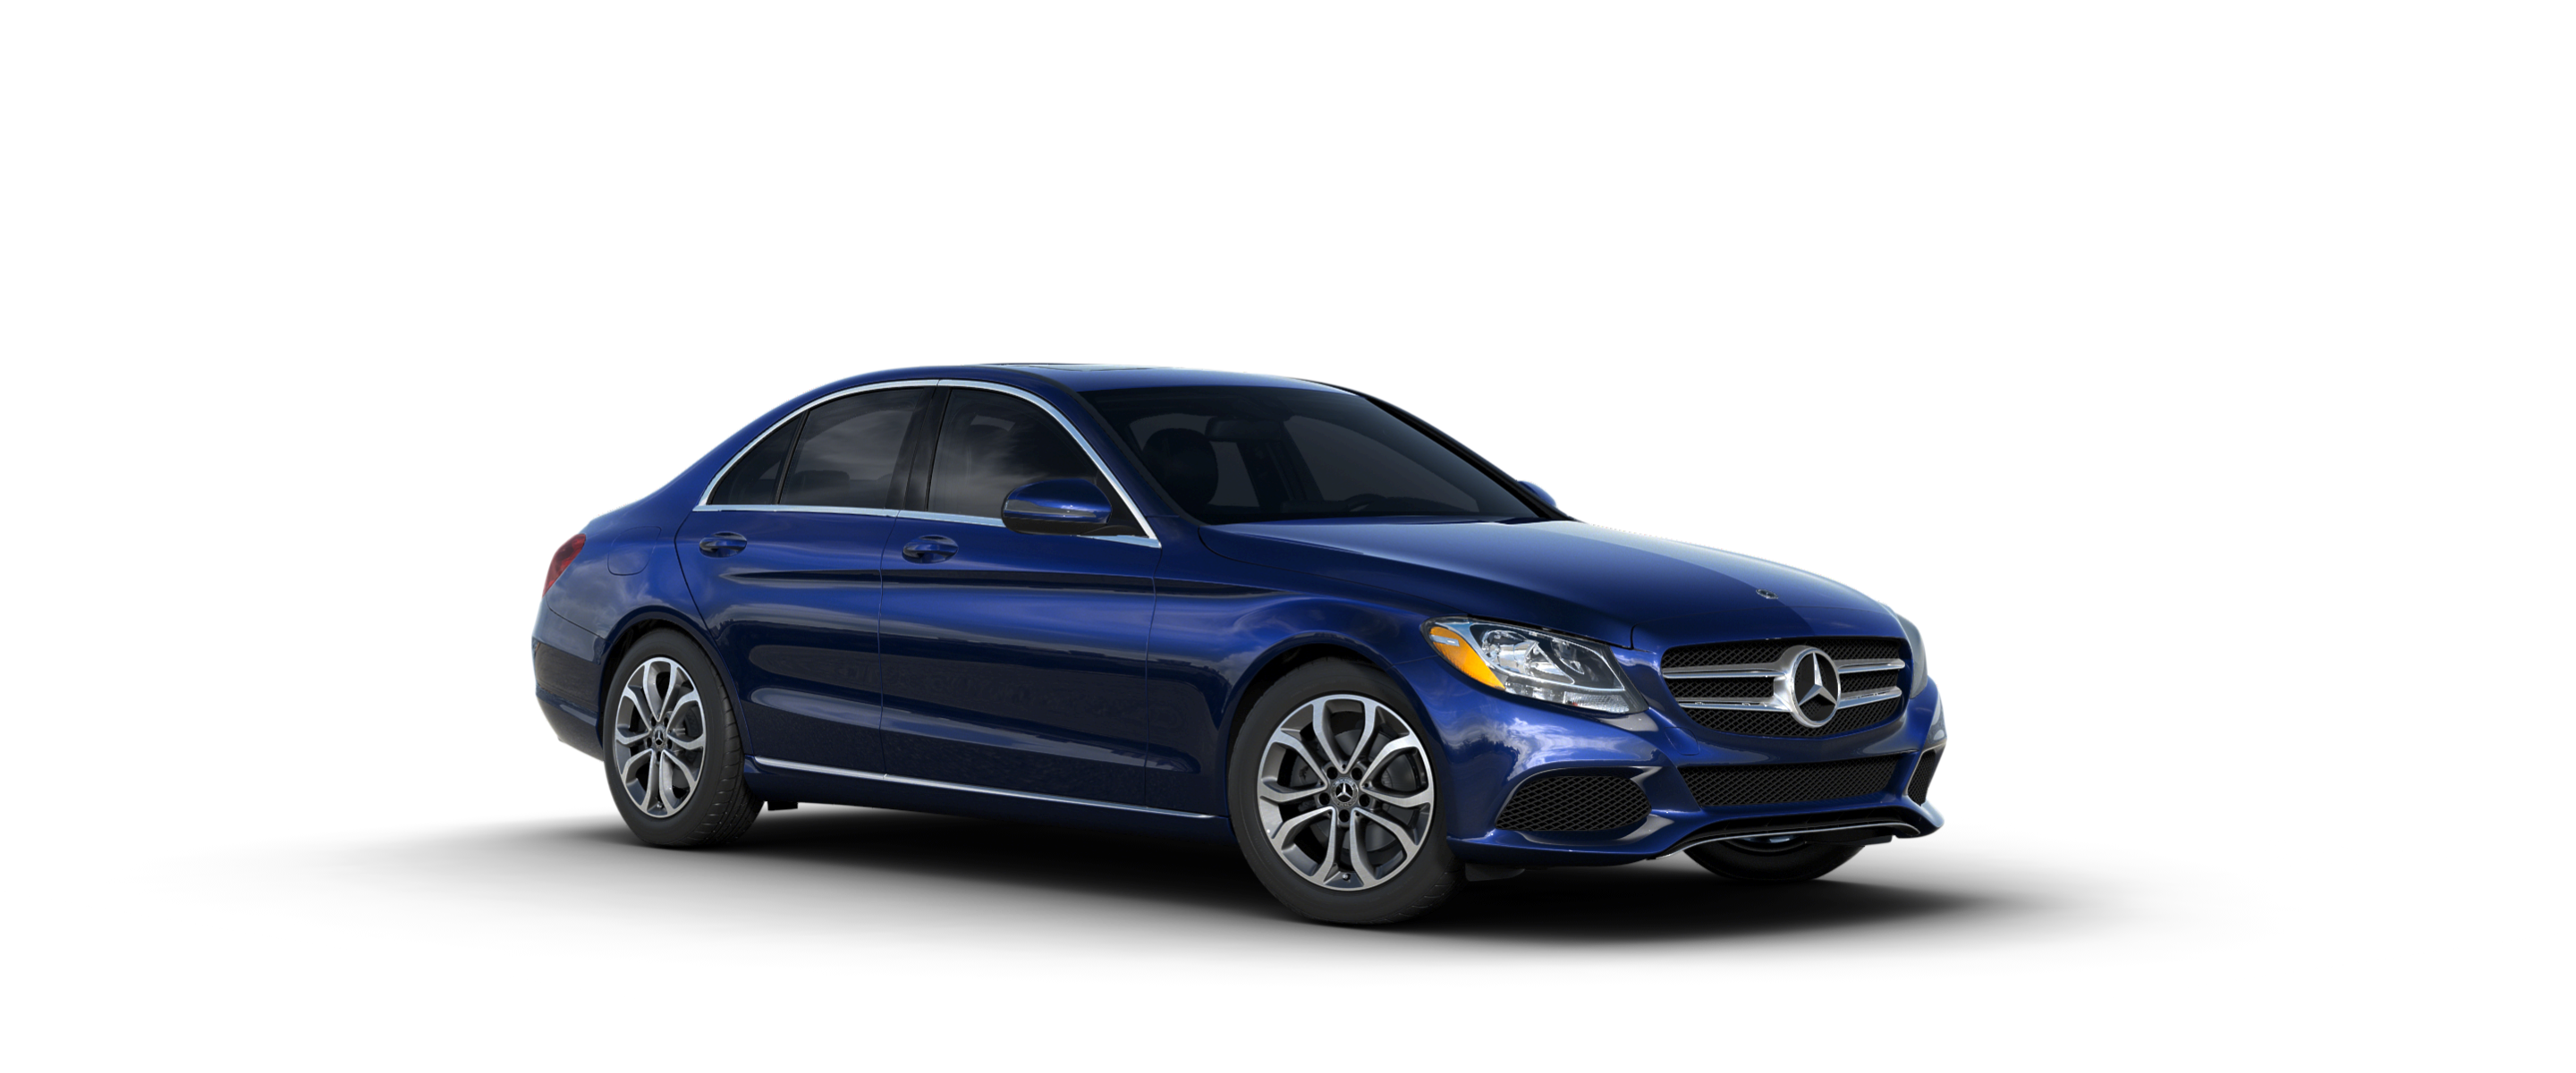 Color Options for the 2018 Mercedes-Benz C-Class Sedan